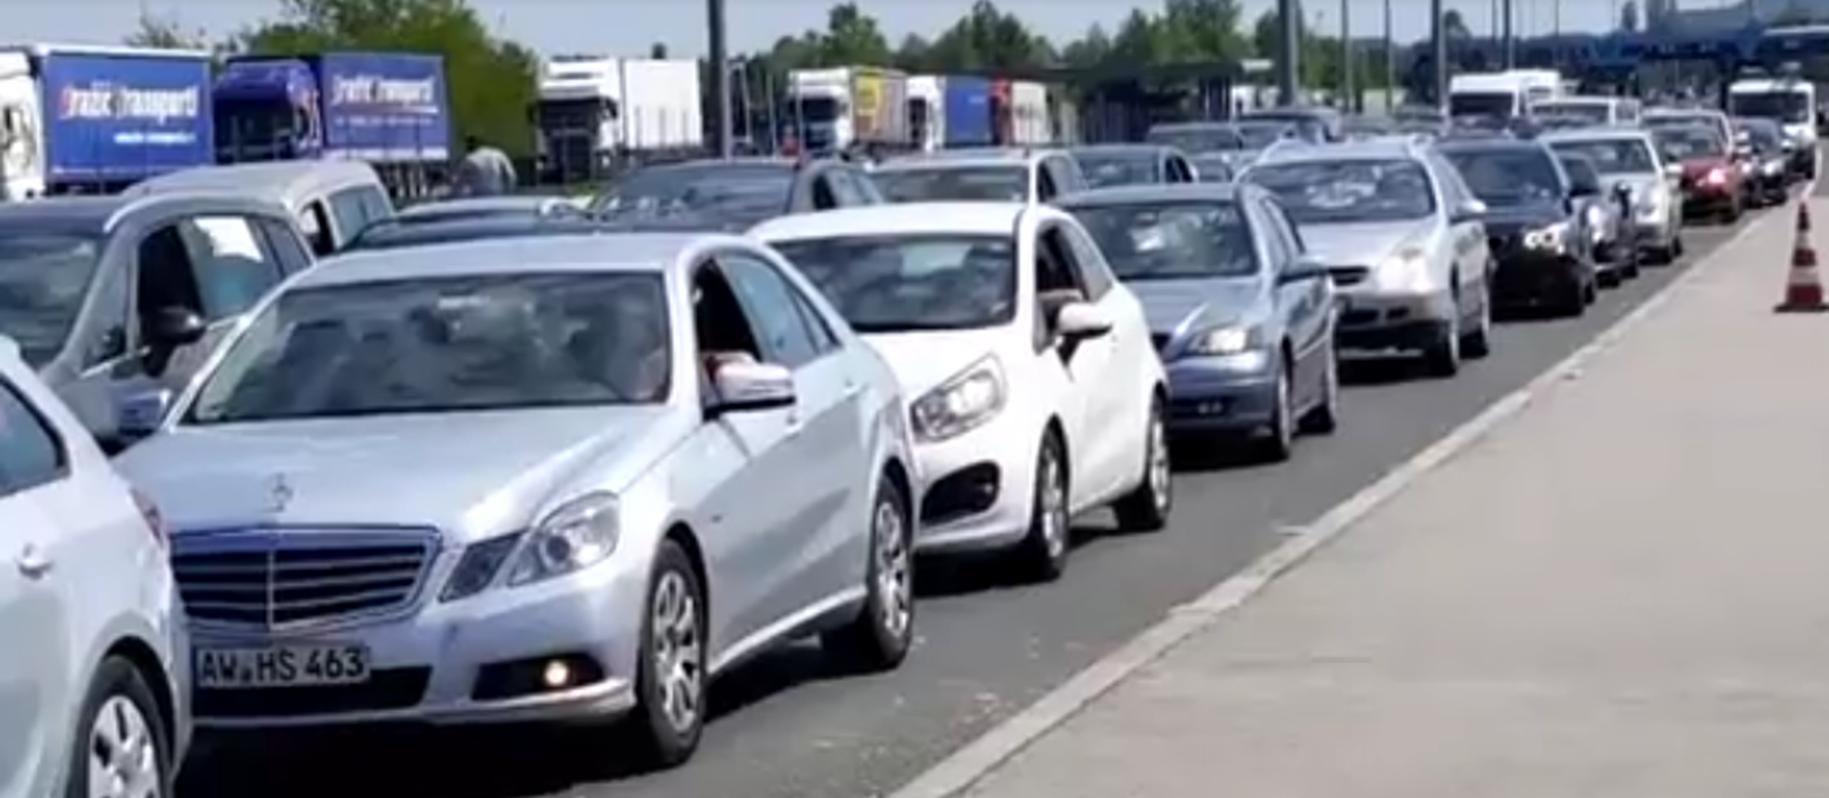 cro-slo (Index.hr)